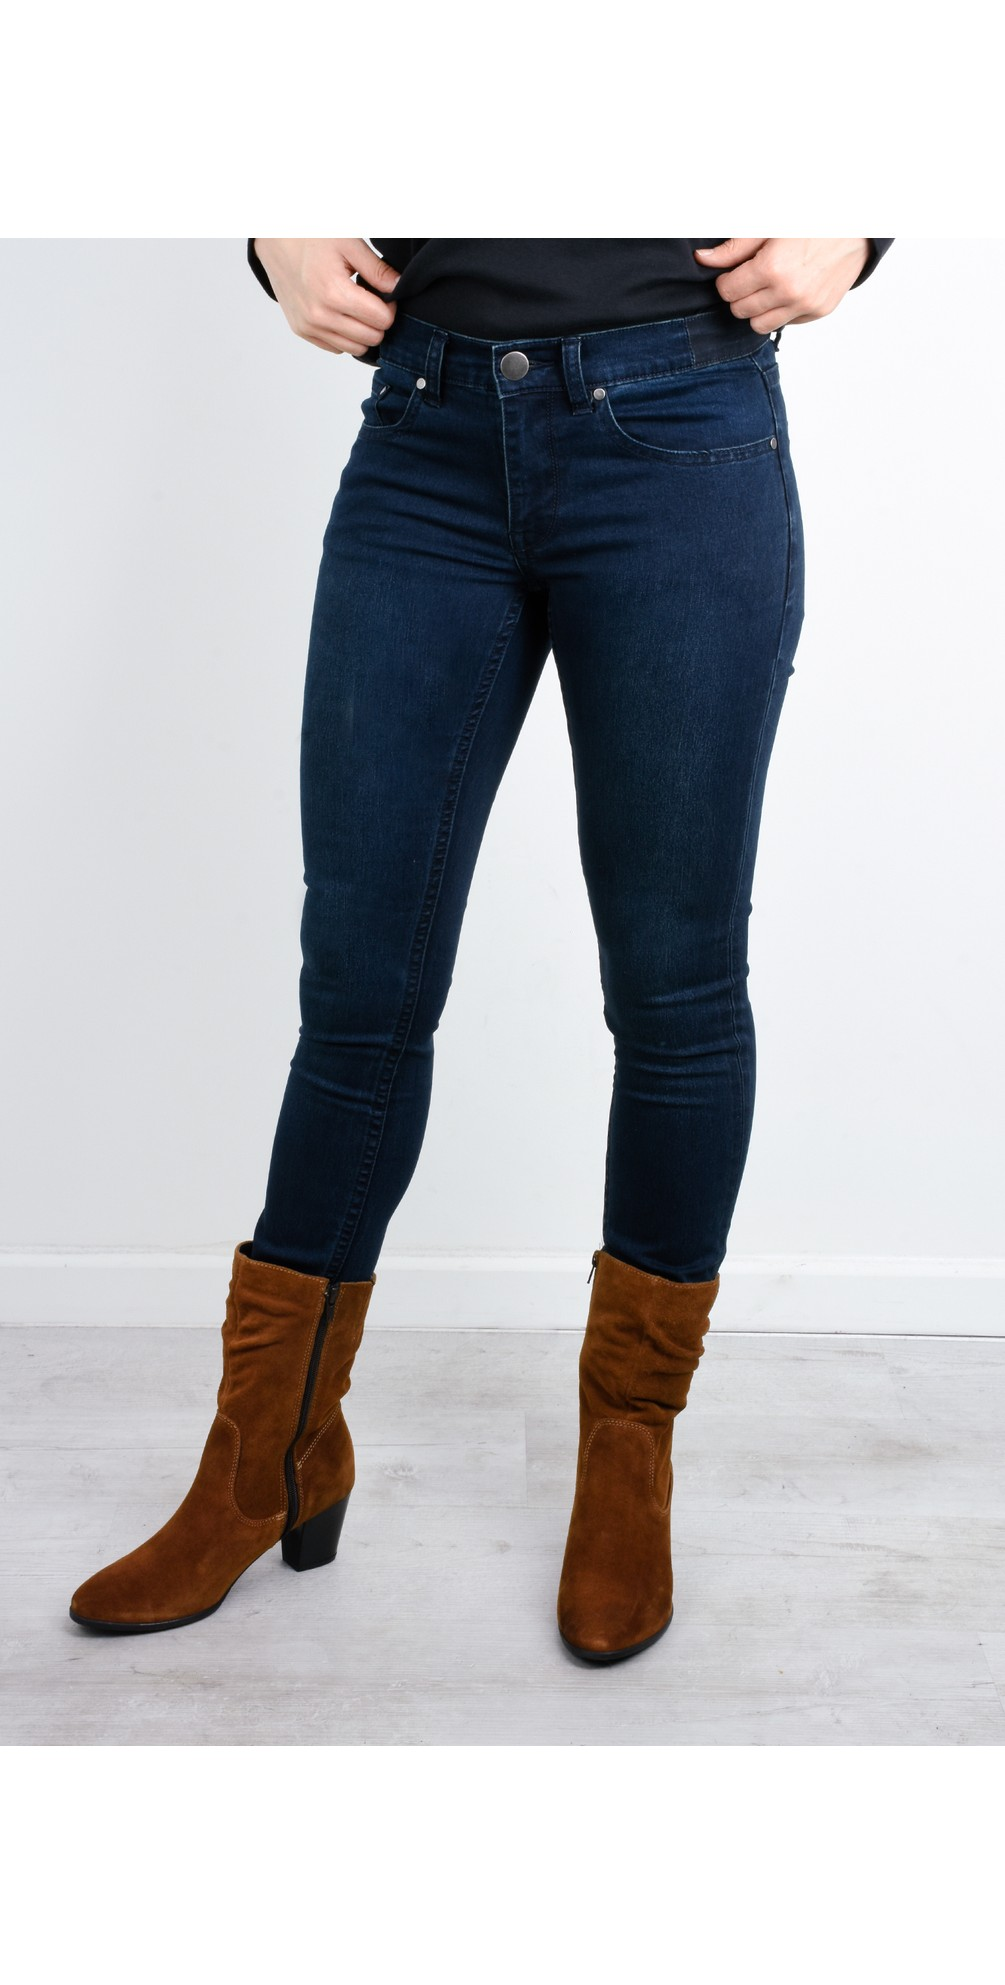 Lucy Girlfriend Jeans main image